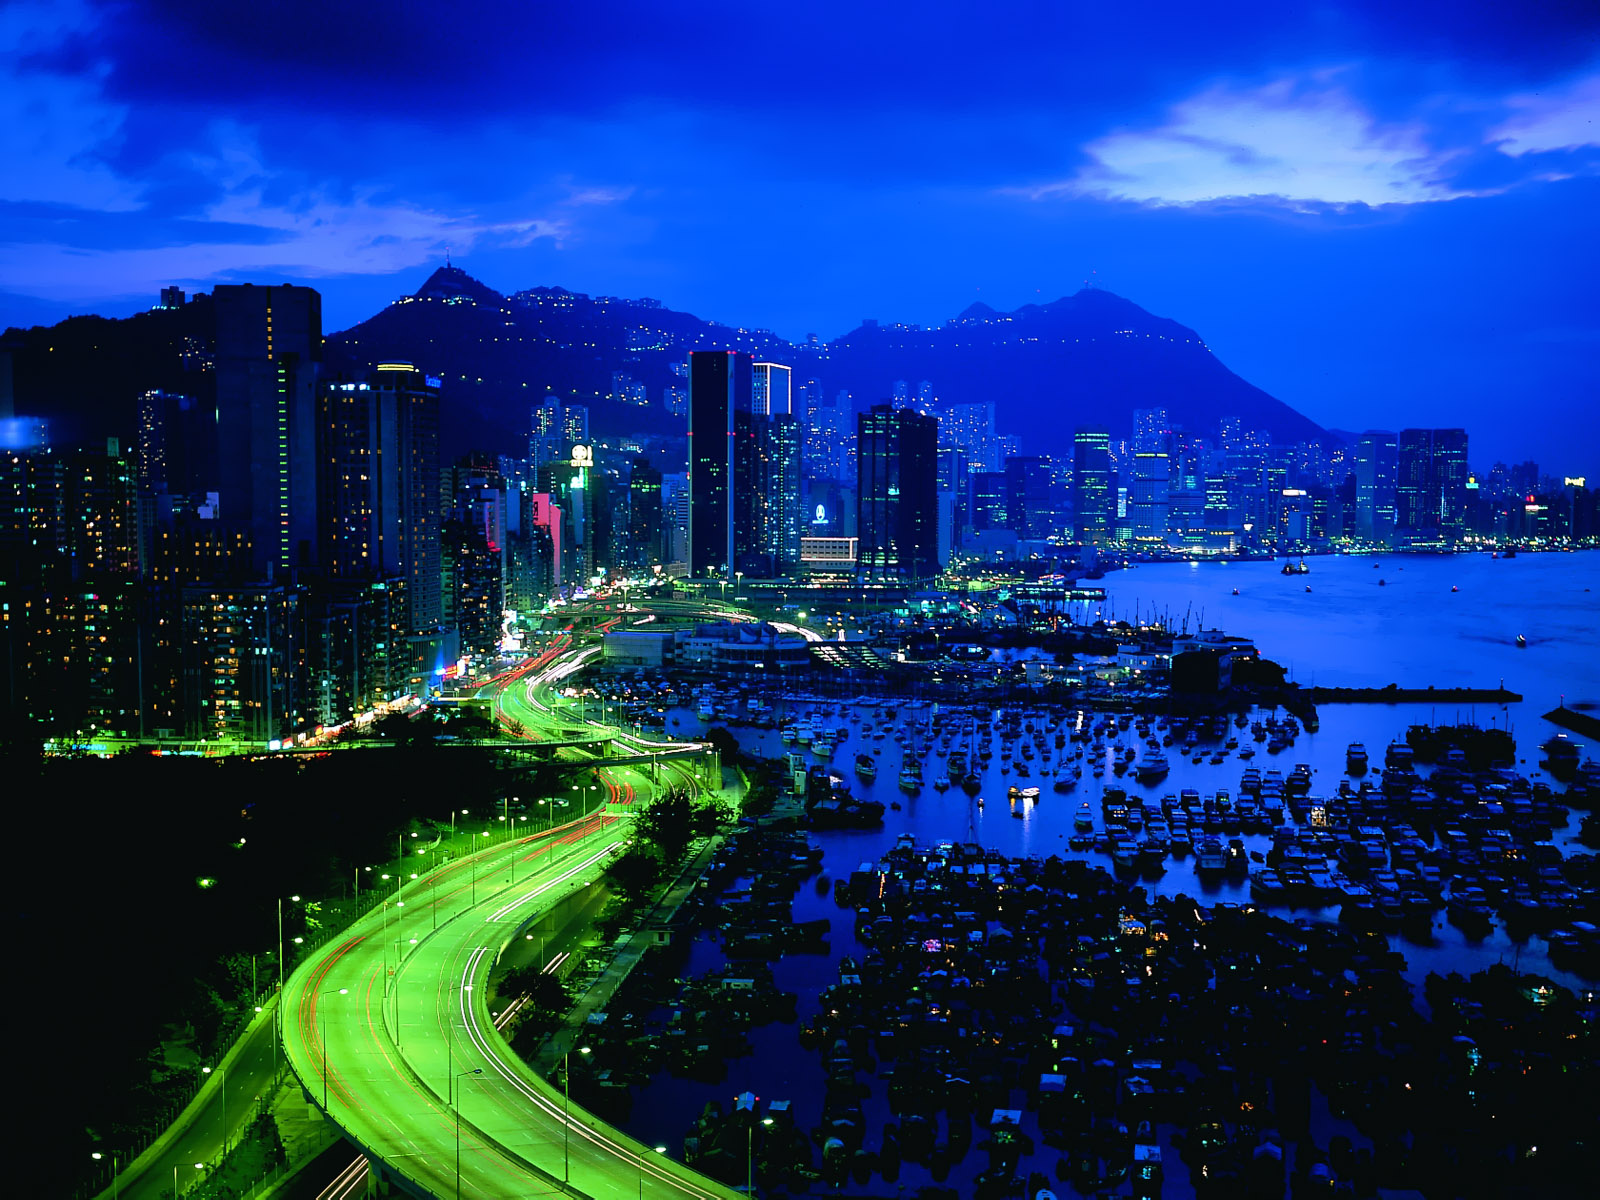 City Lights and Buildings Wallpapers HD | Nice Wallpapers